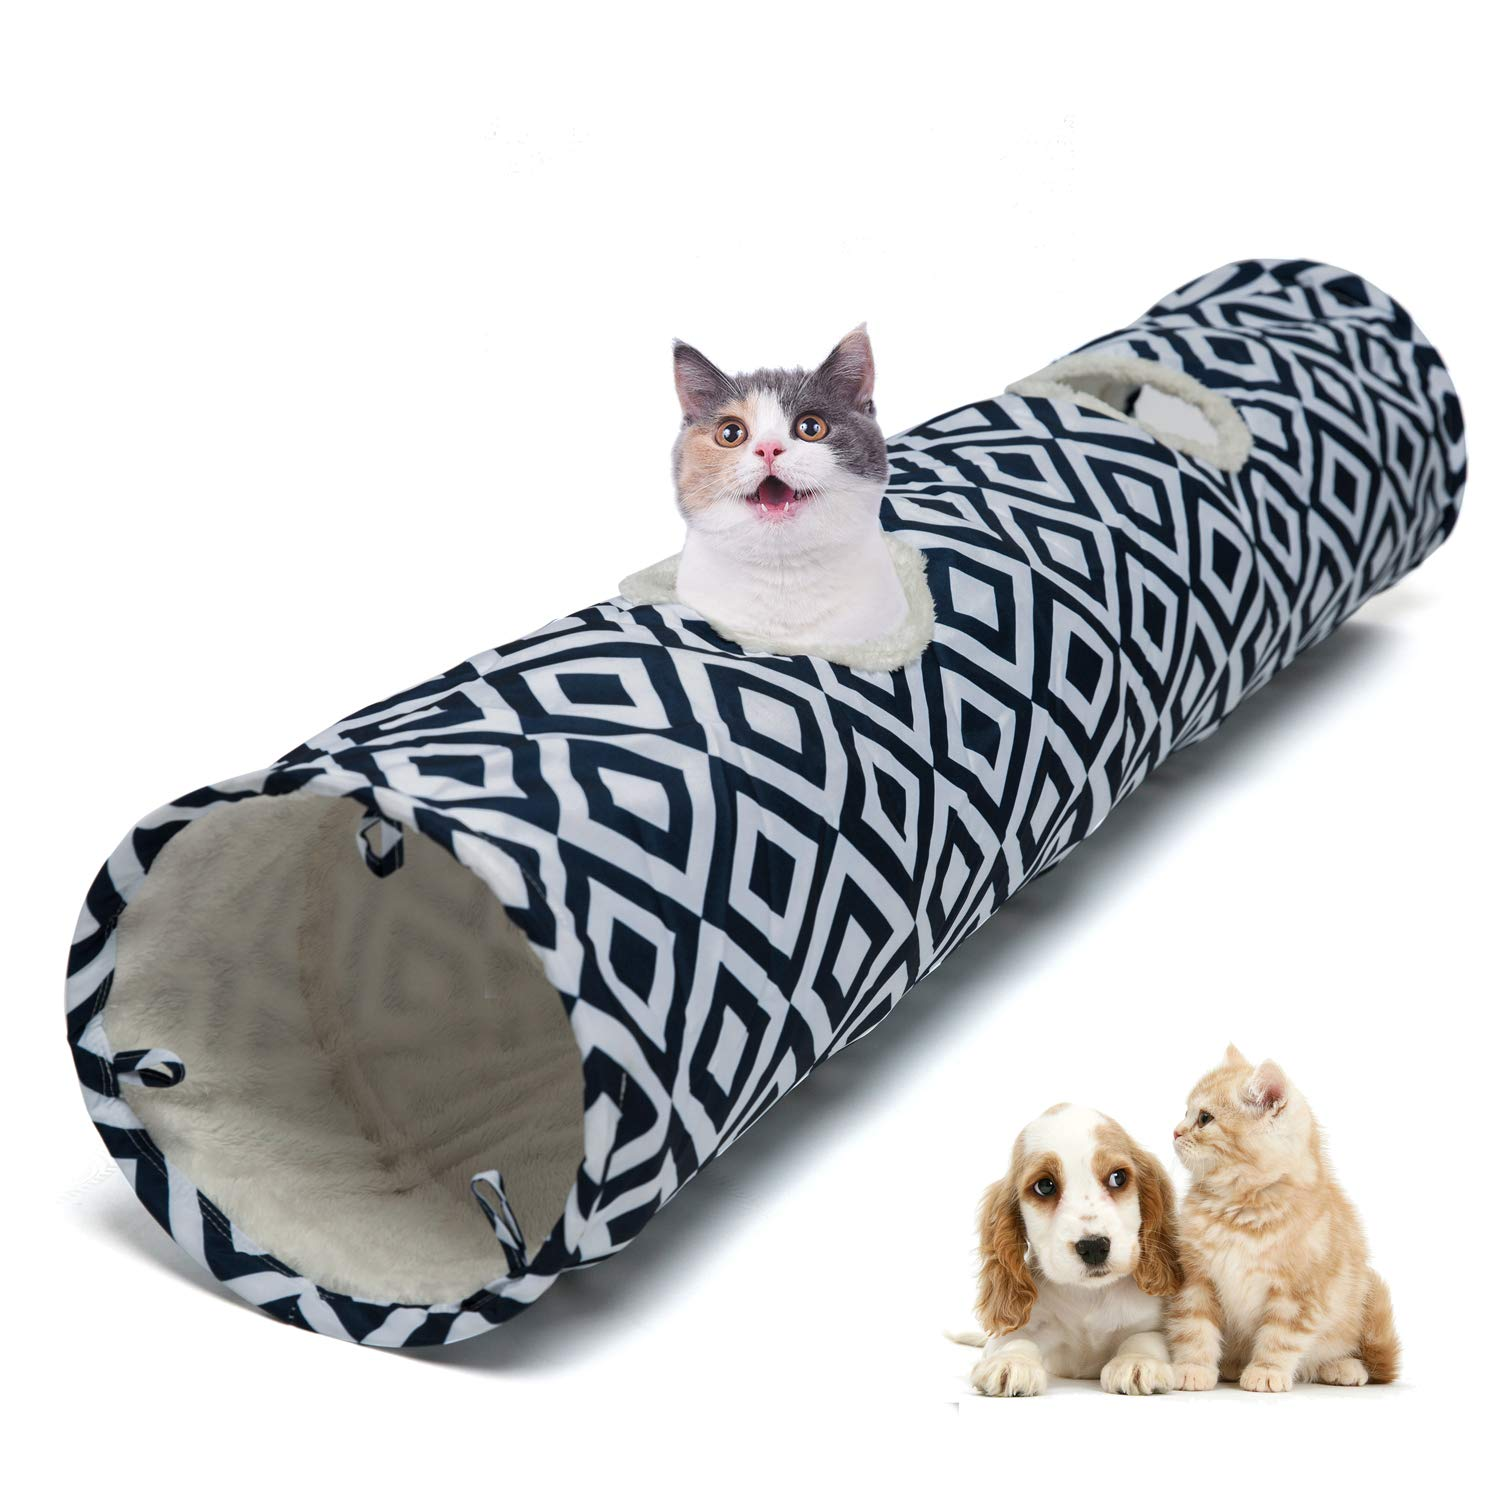 Luckitty Large Cat Toys Collapsible Tunnel Tube with Plush Balls, for Rabbits, Kittens, Ferrets,Puppy and Dogs,Navy,Blue,White by Luckitty